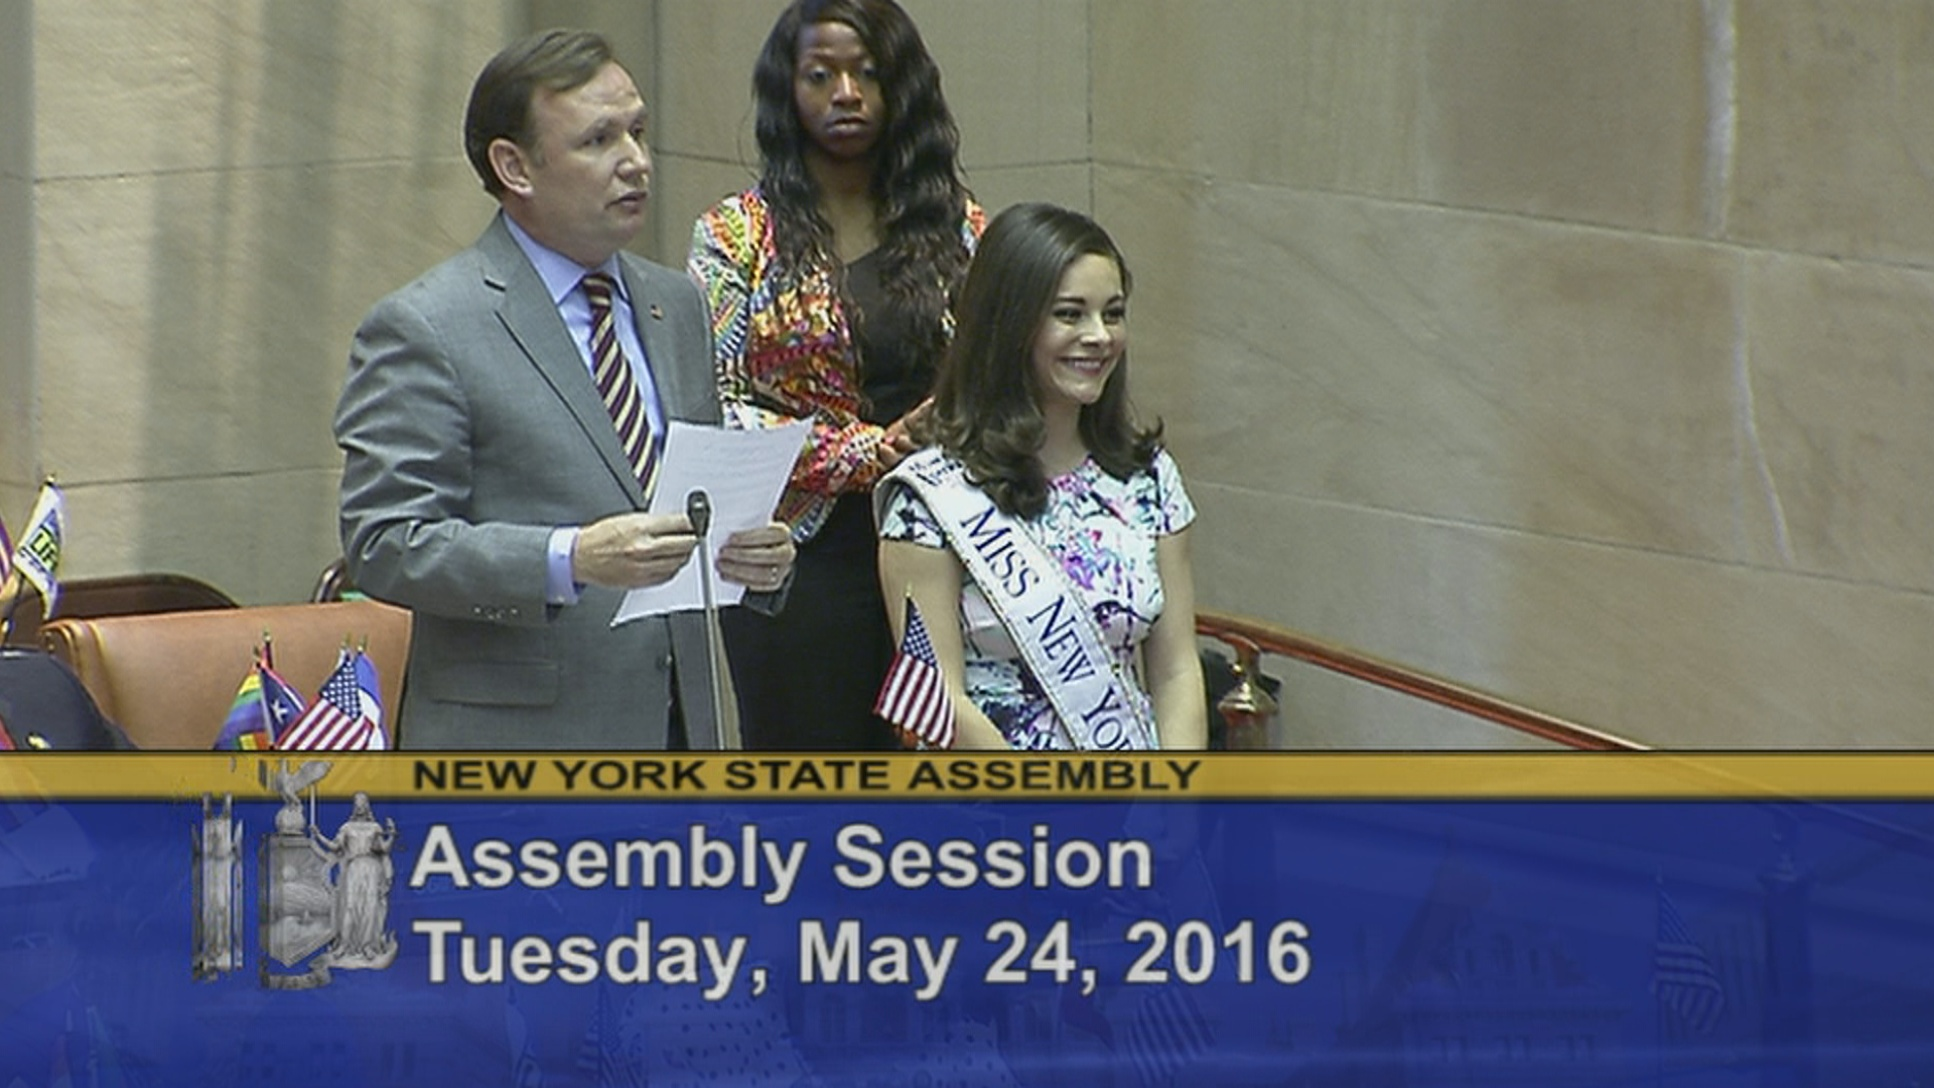 Miss New York 2015 Visits Assembly